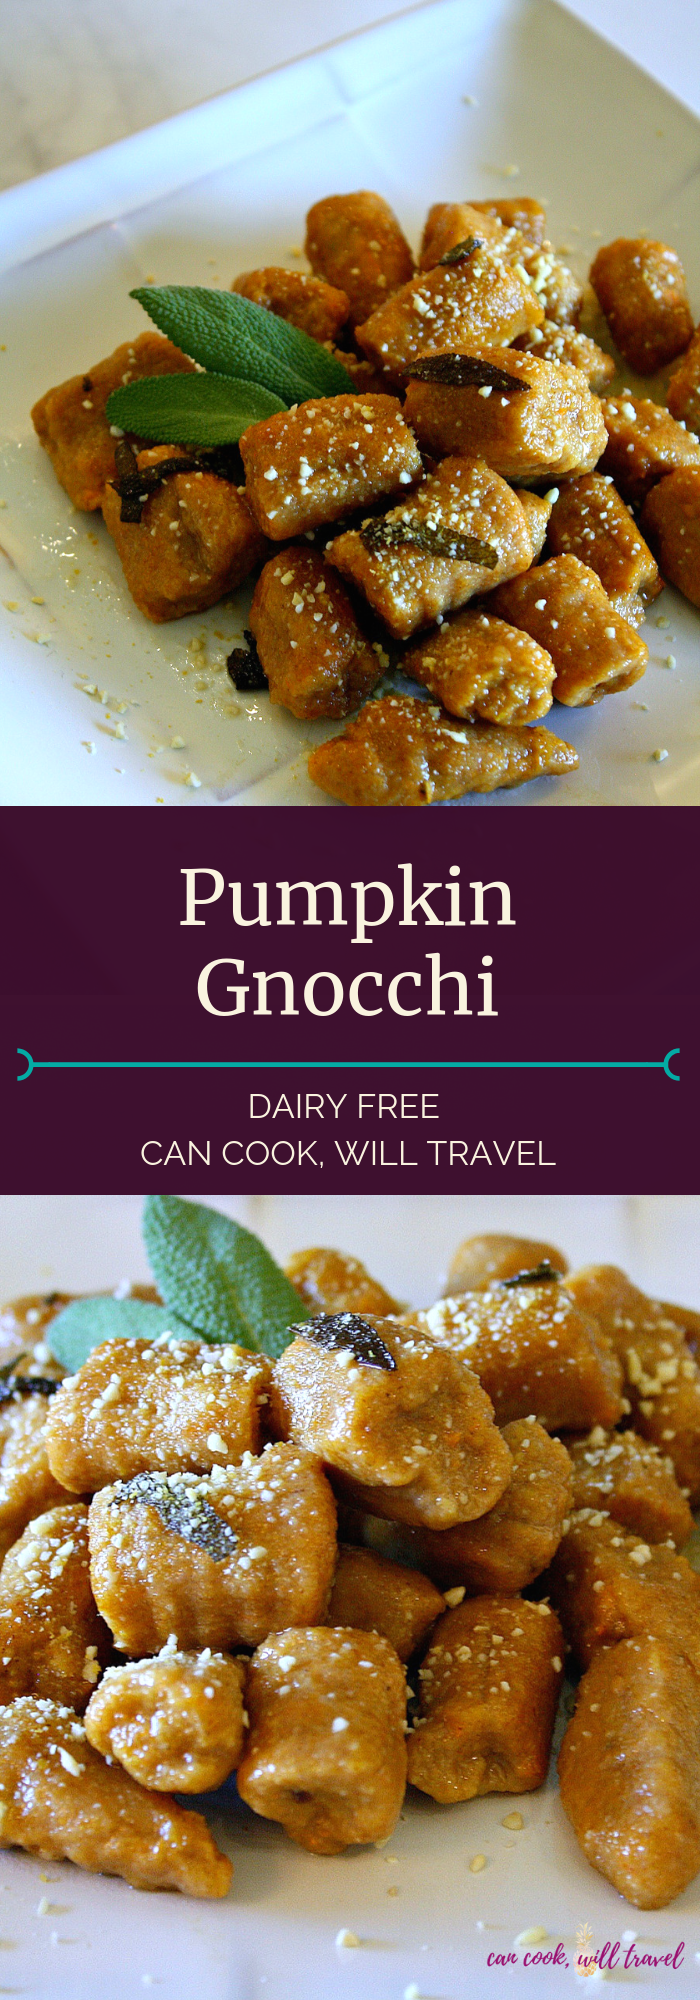 Pumpkin Gnocchi_Collage1